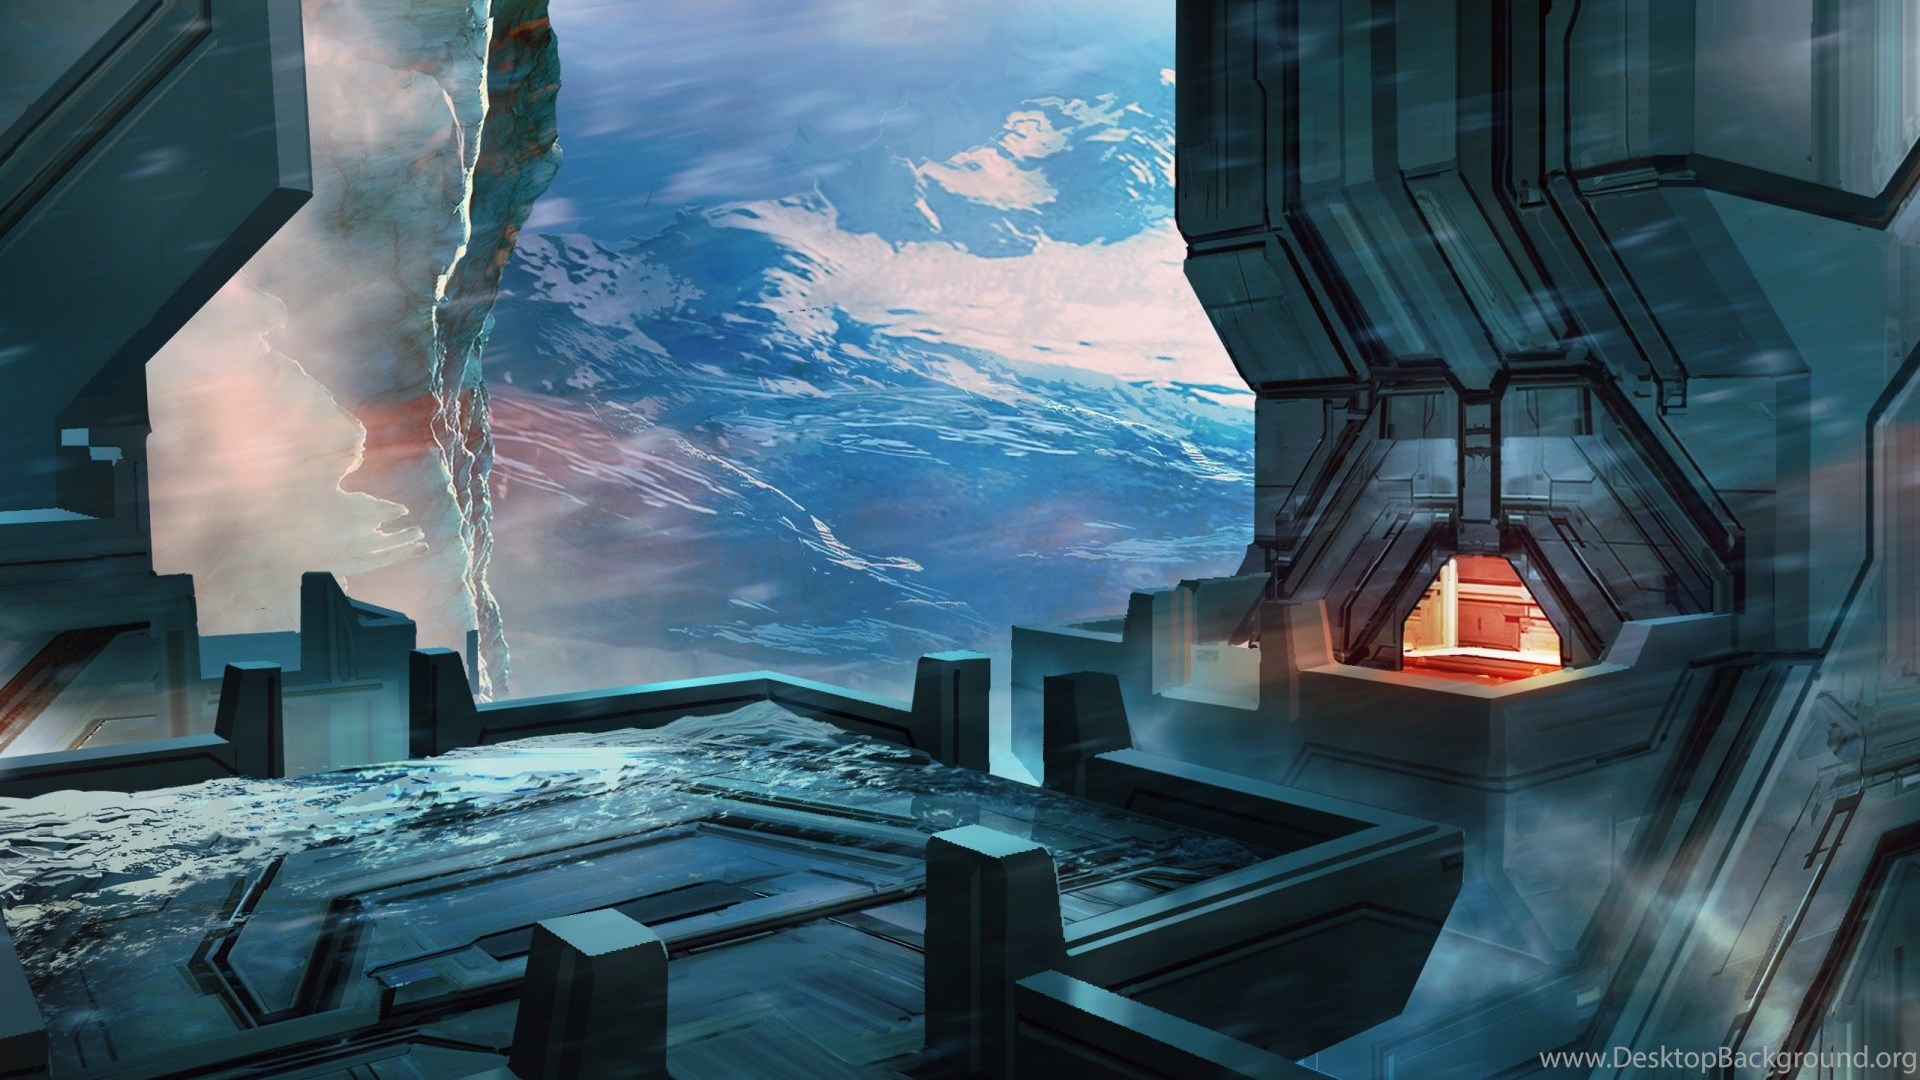 Halo 2 Anniversary Concept Lockout Ice And Fire Hd